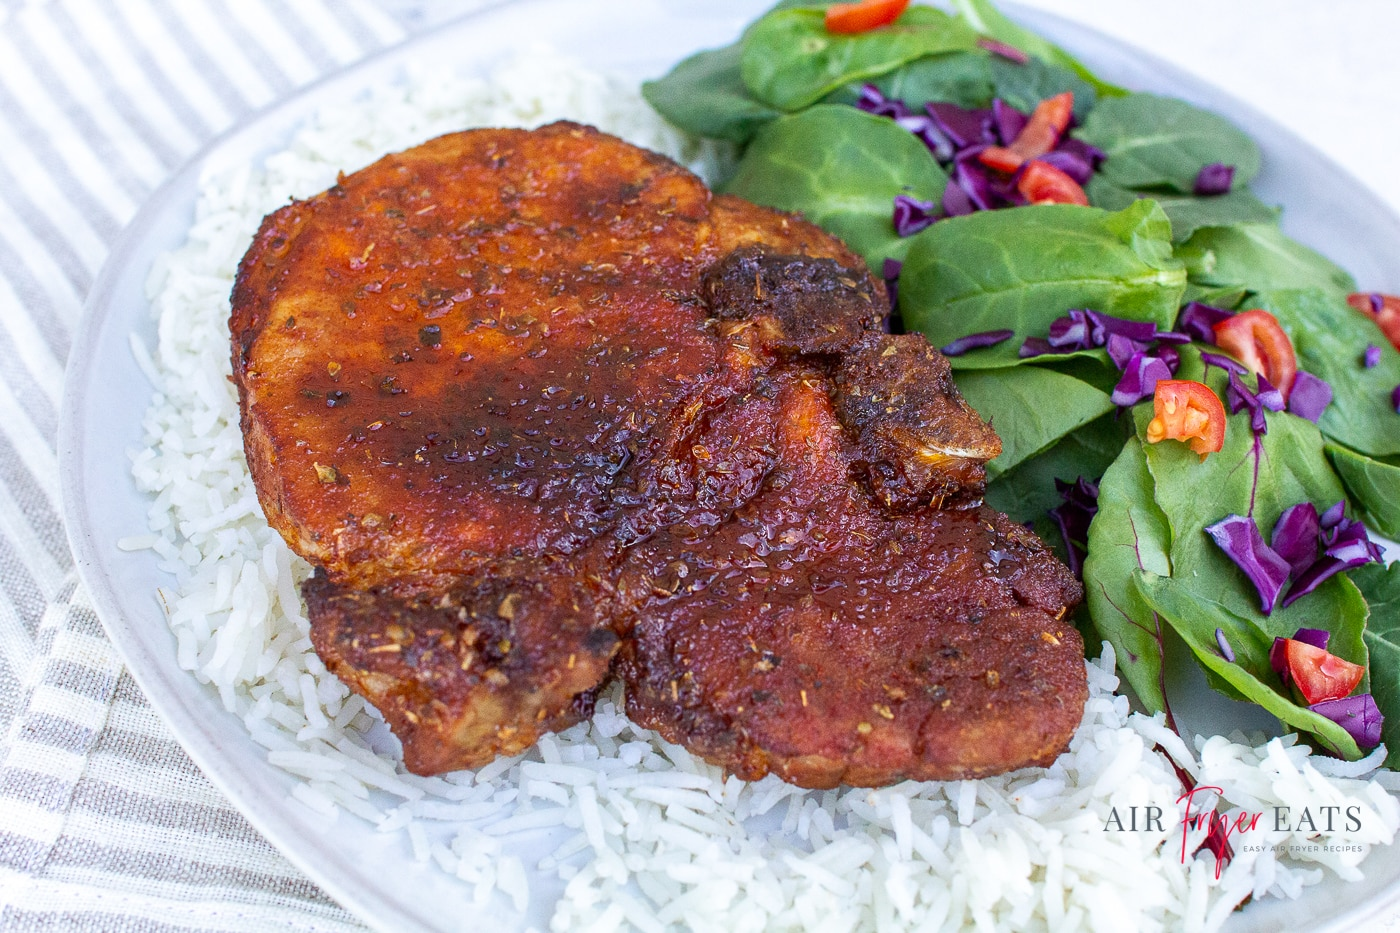 a pork chop with a crispy brown crust aside a spinach and vegetable salad served with fluffy white rice